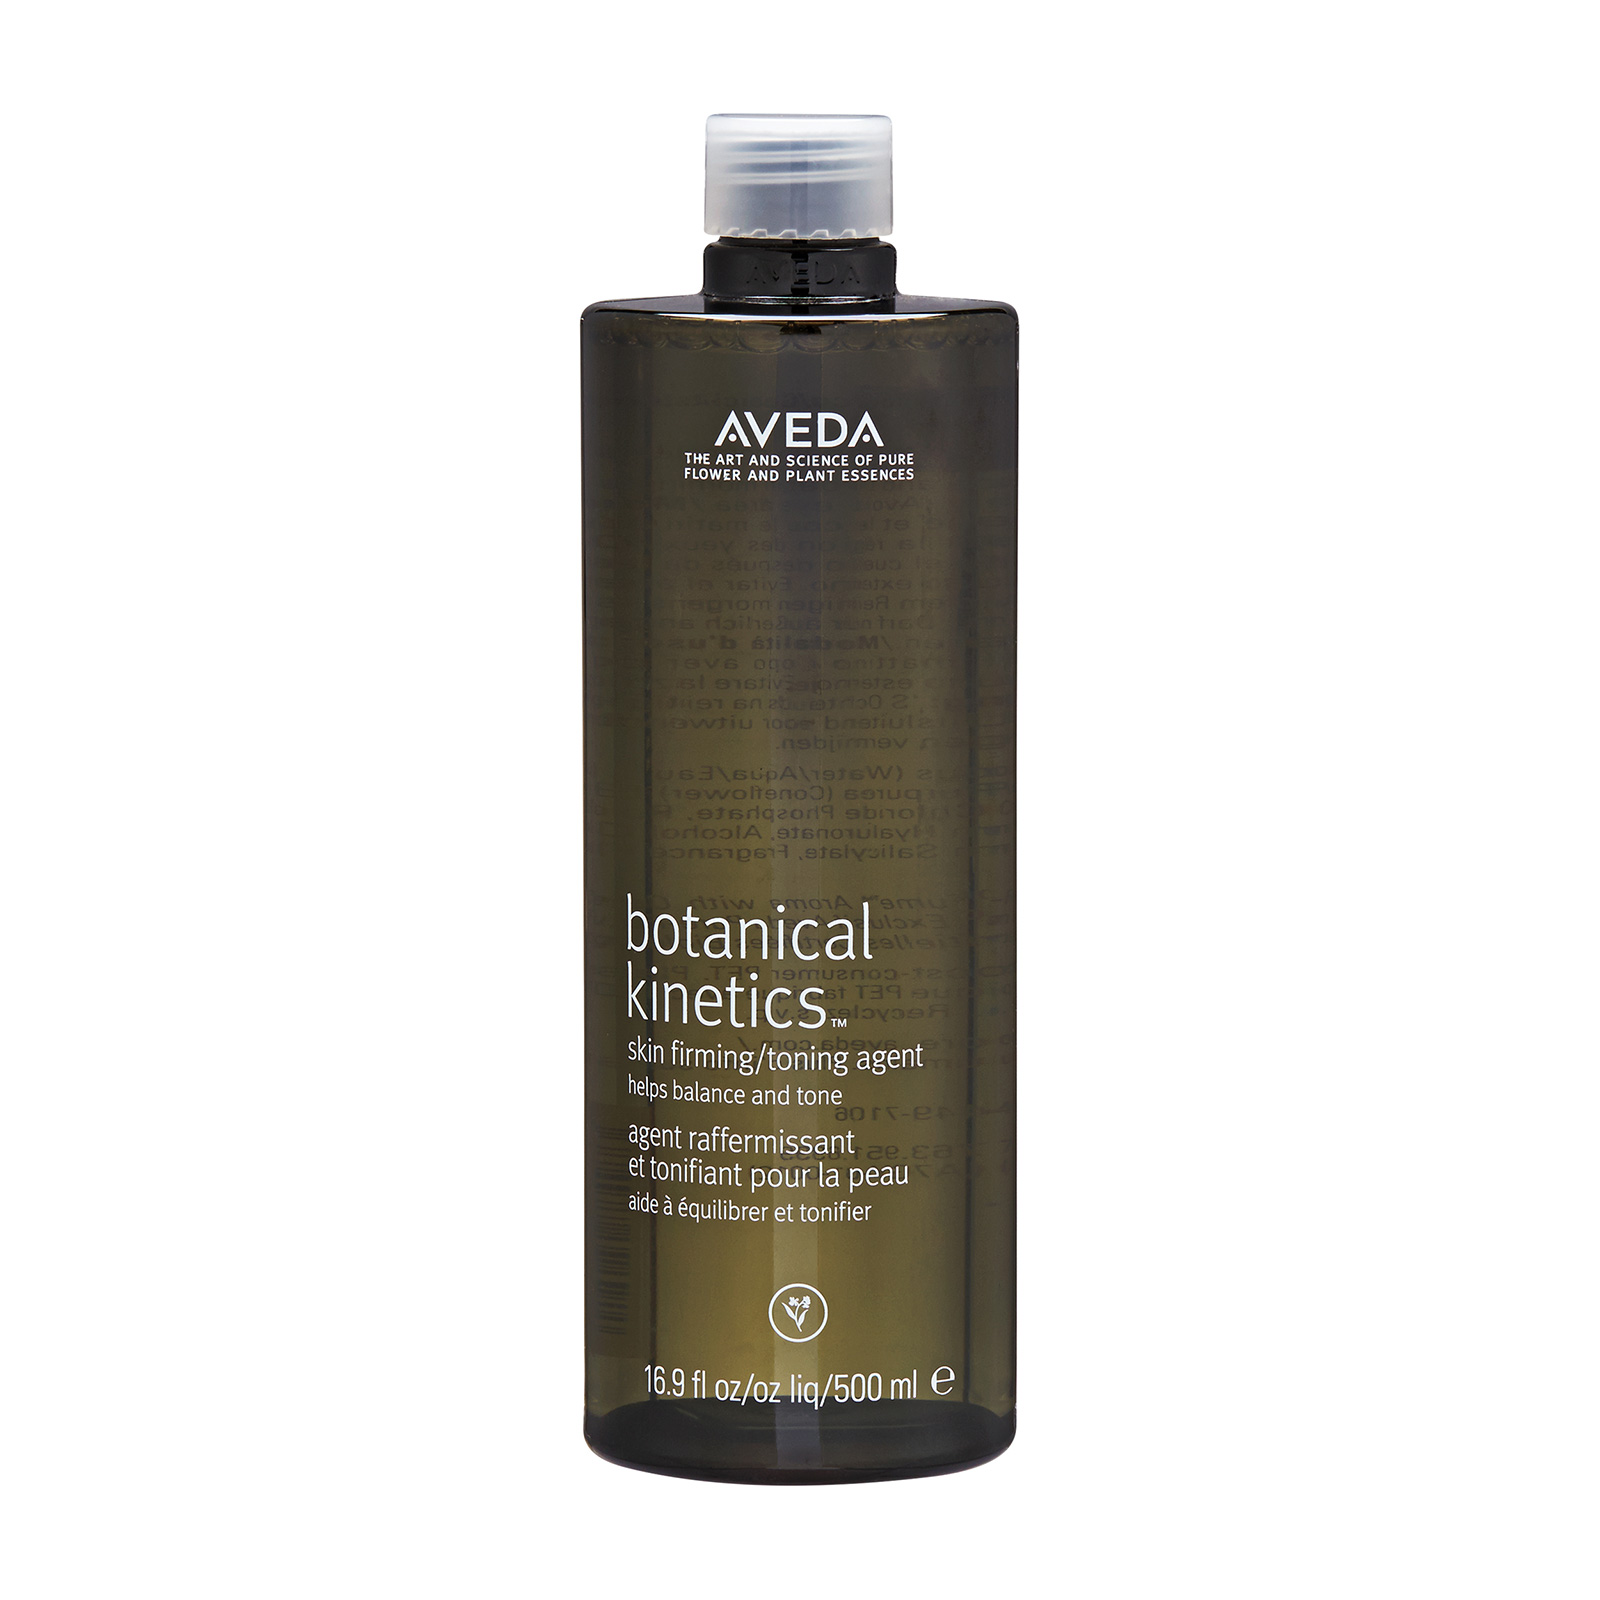 Aveda Botanical Kinetics™  Skin Firming / Toning Agent 16.9oz, 500ml (Refill size without pump 補充裝不包噴頭)